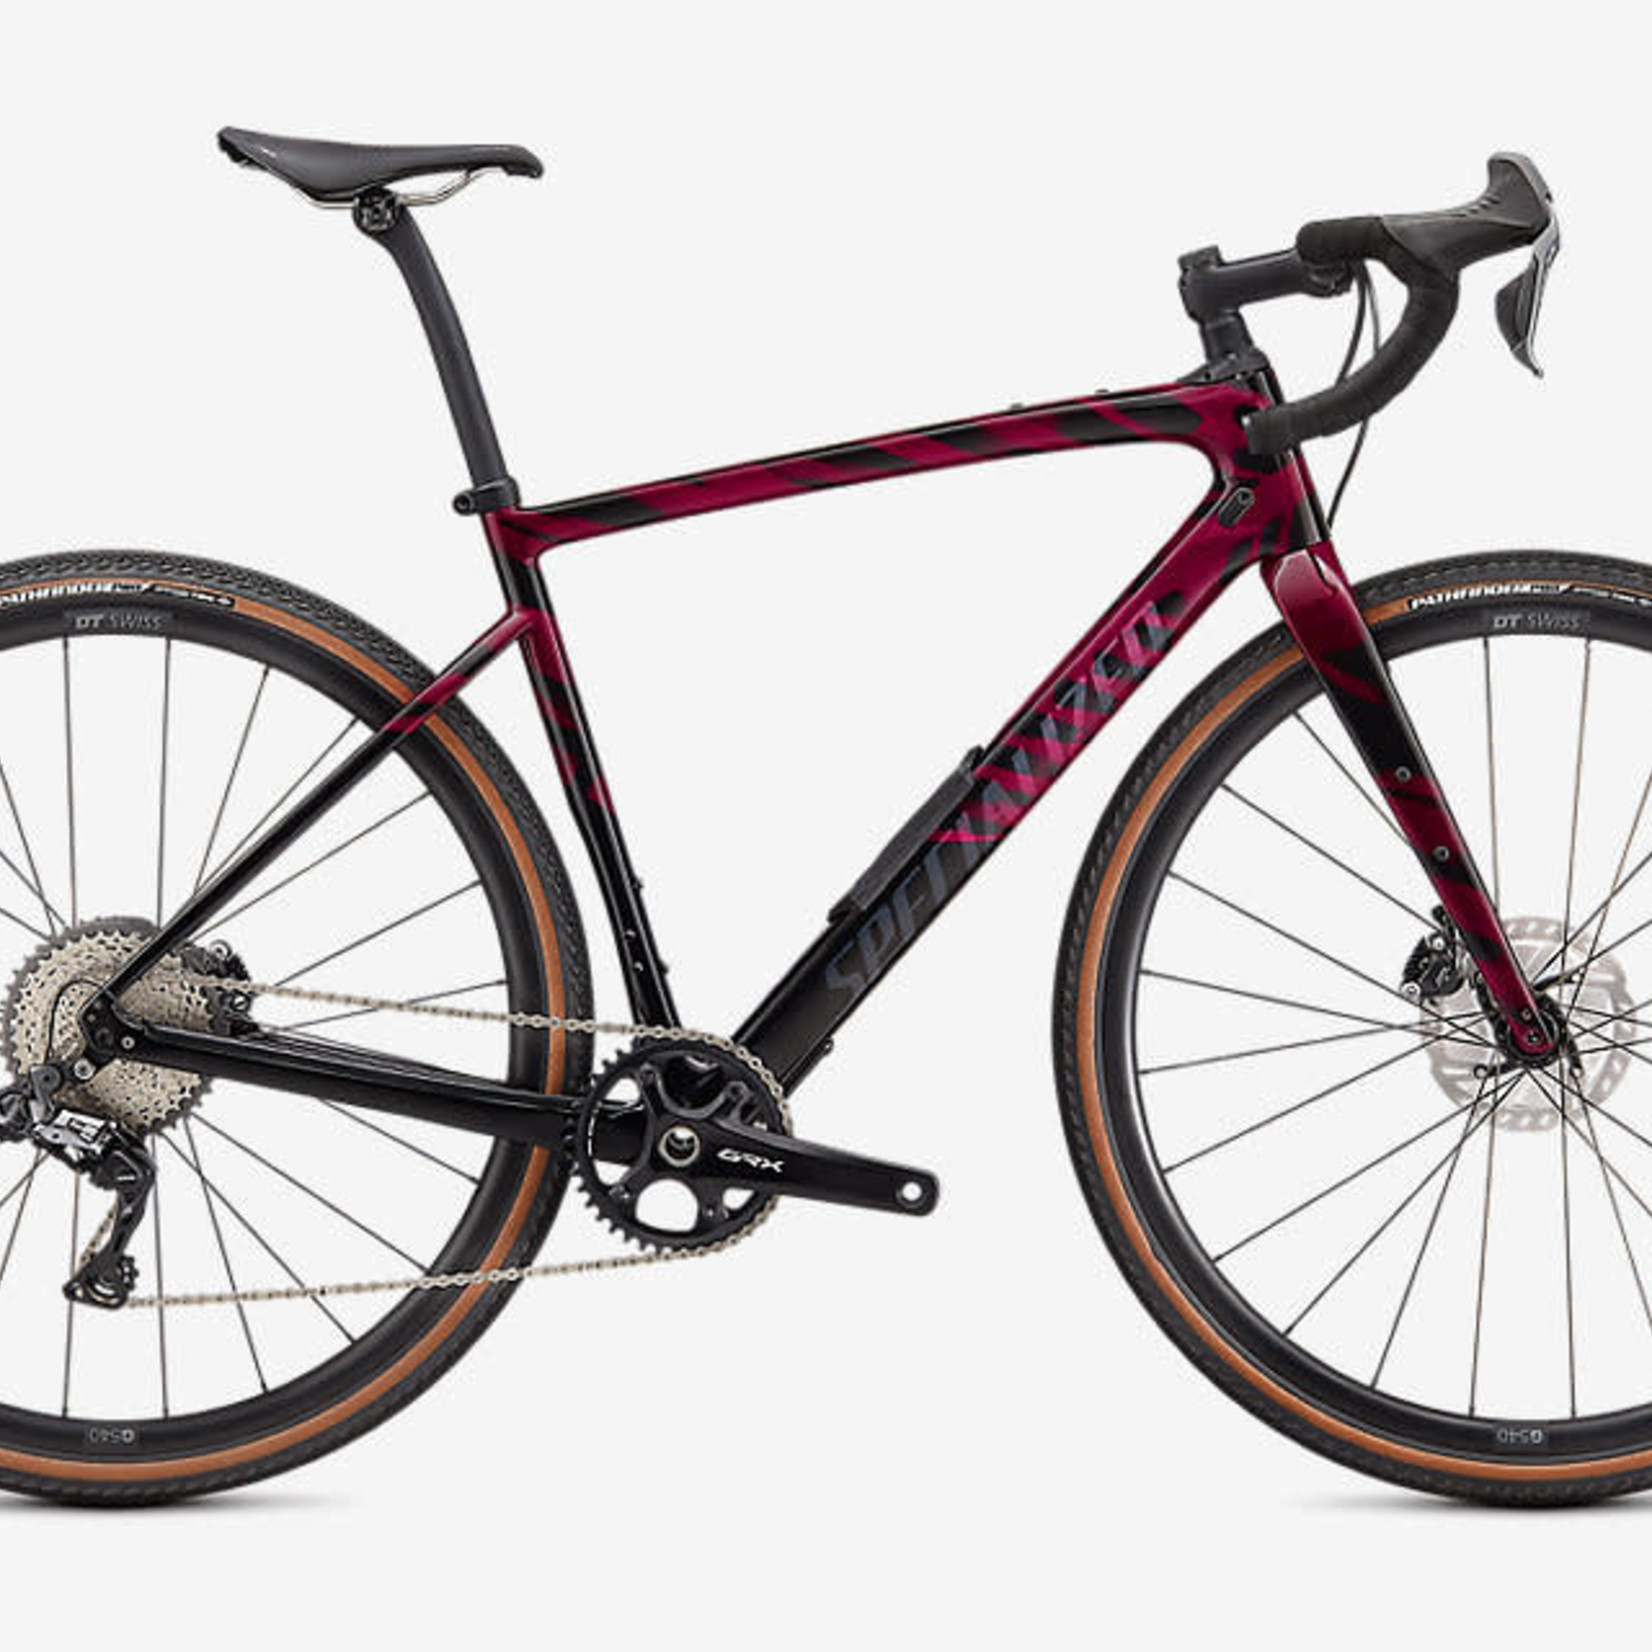 Specialized DIVERGE EXPERT CARBON RSBRY/REDWD/BLK 58